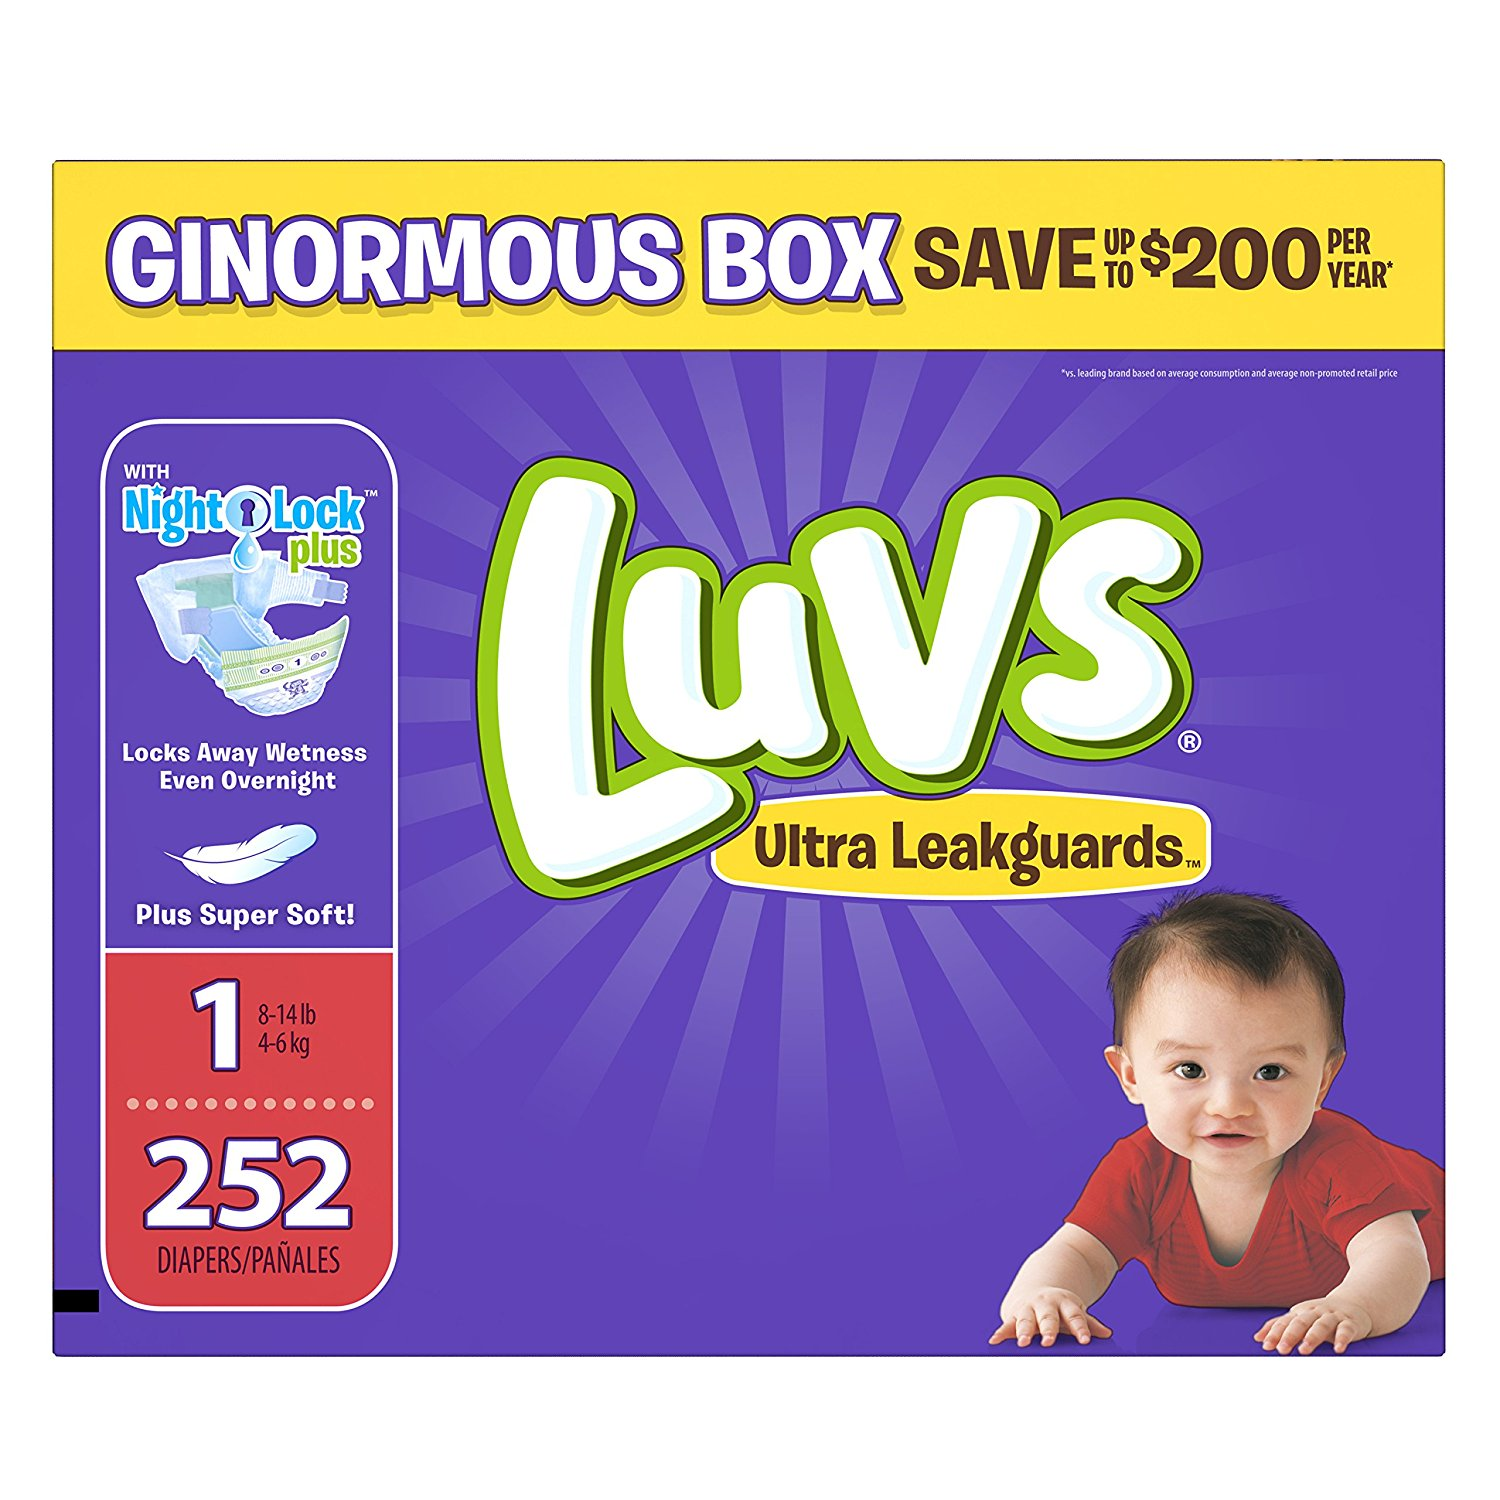 81TD6Z7WP6L. SL1500 Top 10 Best Baby Diapers 2021 - Affordable Disposable Baby Diaper Reviews